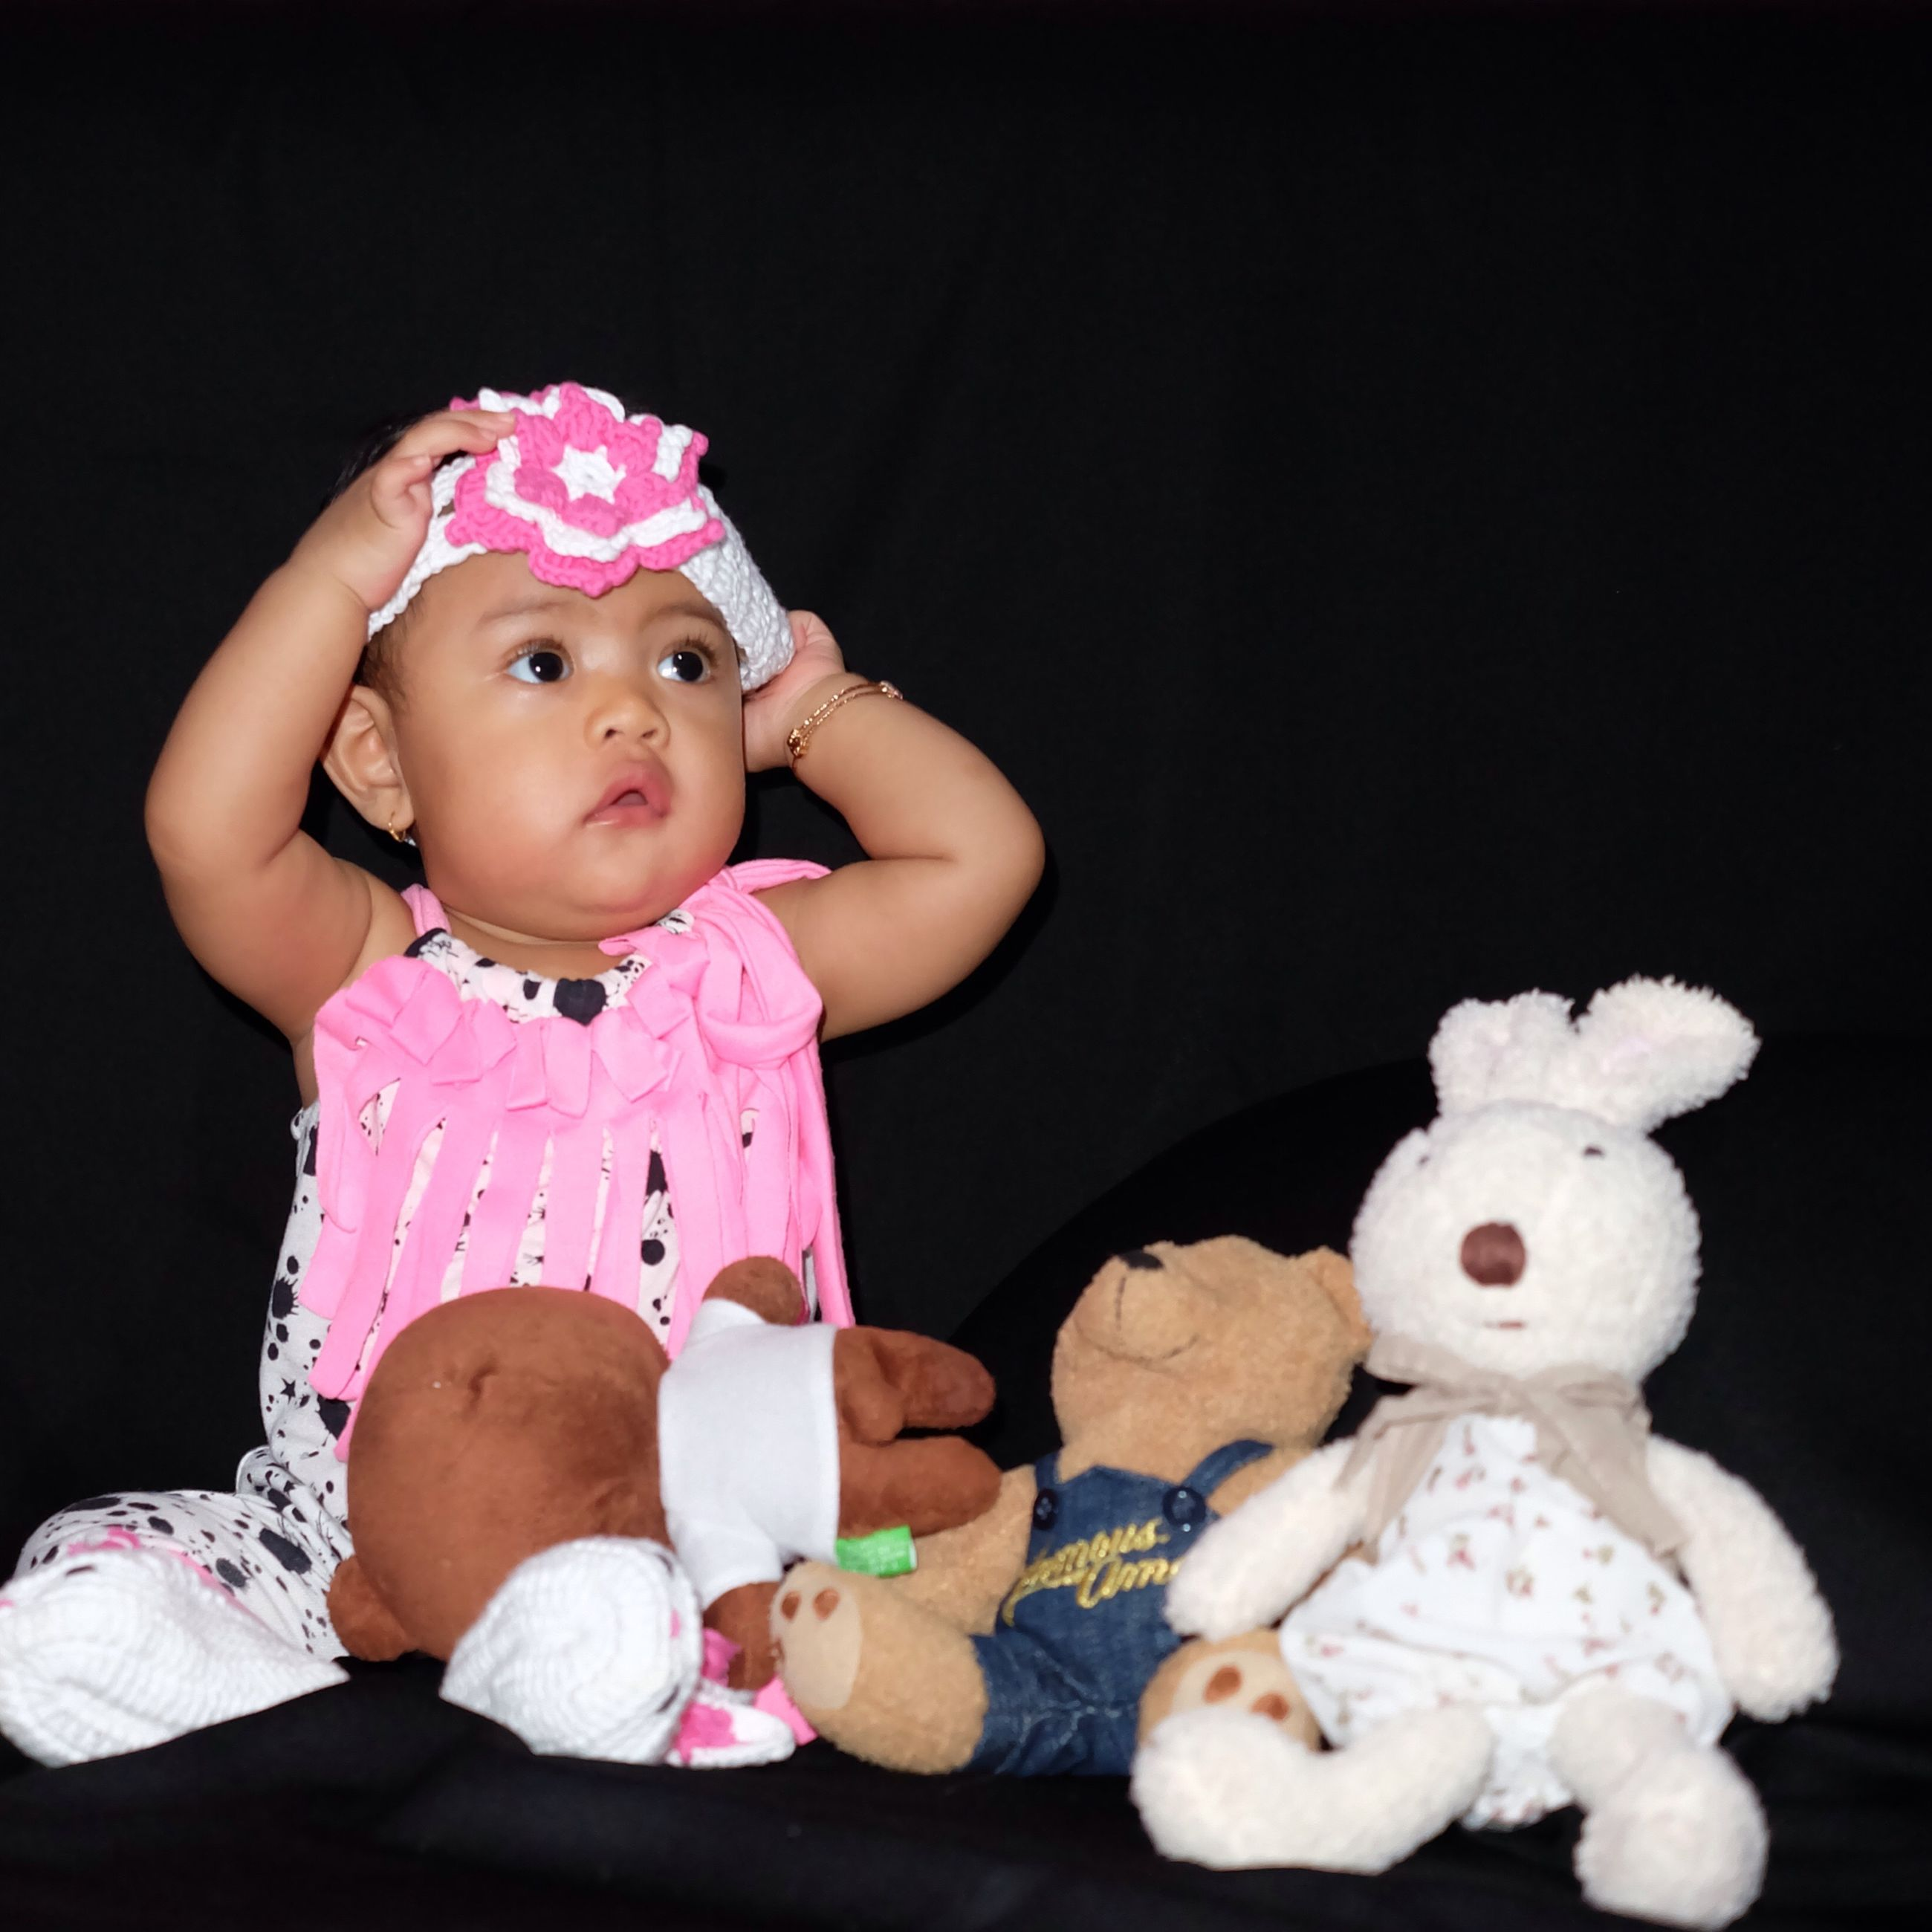 childhood, elementary age, cute, toy, innocence, indoors, girls, person, boys, babyhood, baby, stuffed toy, toddler, animal representation, front view, playful, portrait, looking at camera